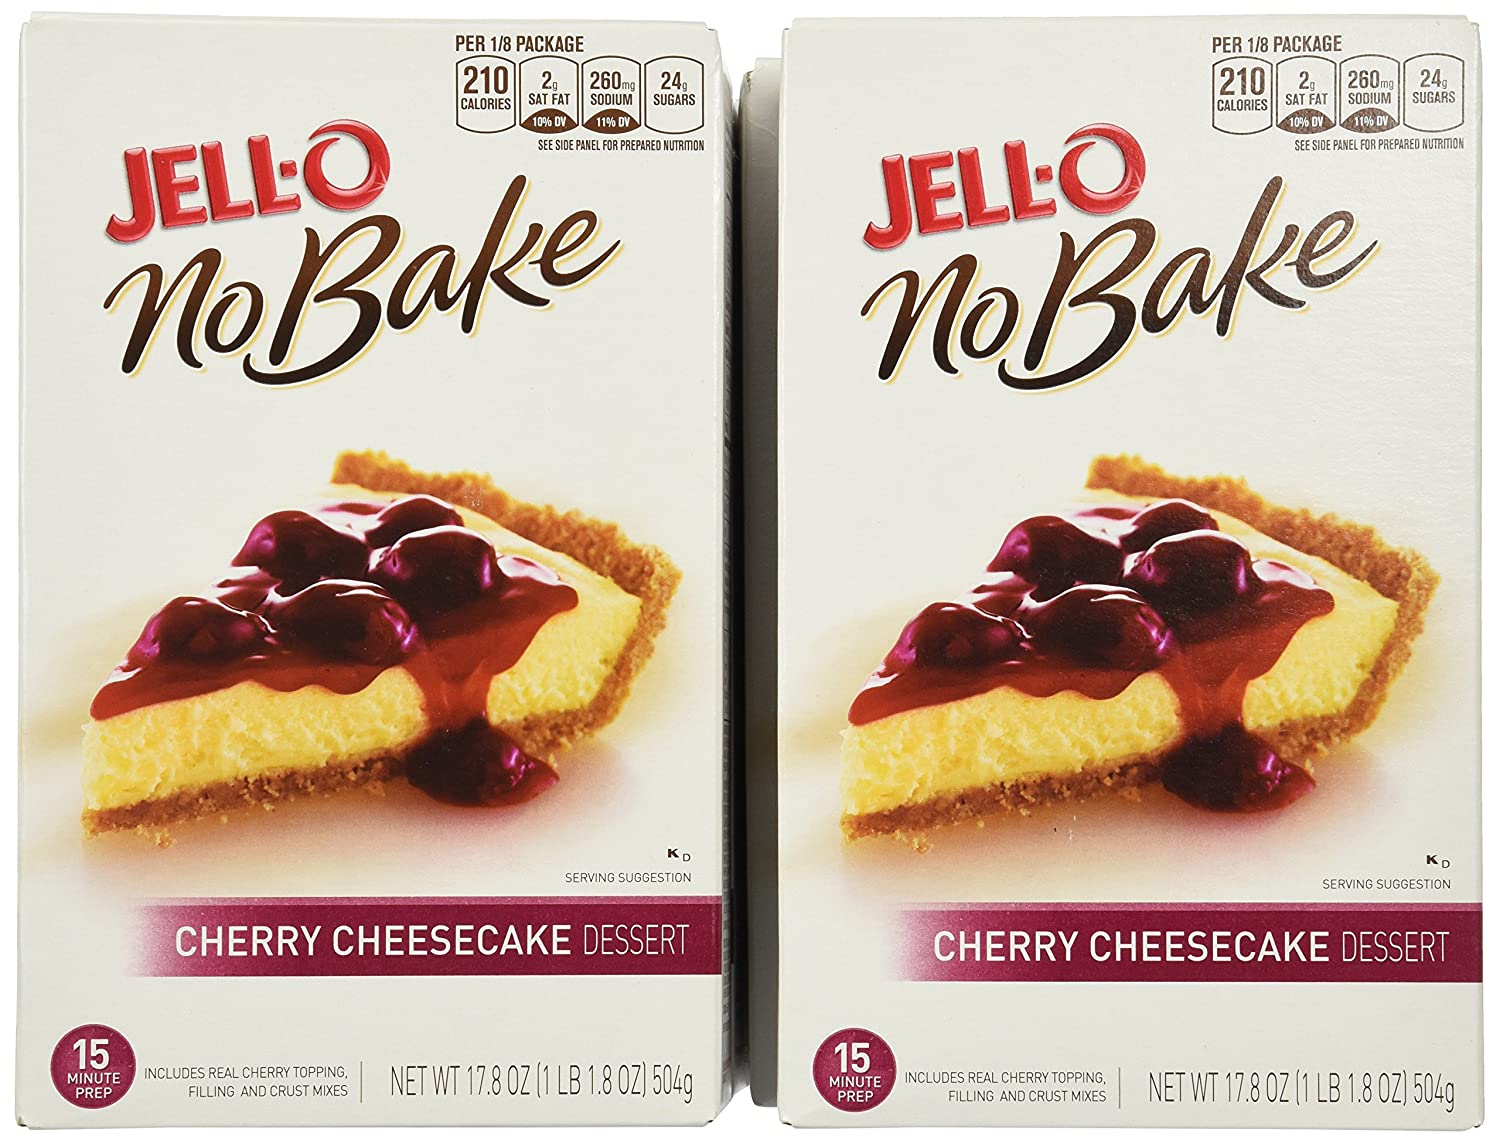 Amazon.com : Jell-O No Bake Cherry Cheesecake, 17.8-Ounce Boxes (Pack of 5) : Cake Mixes : Grocery & Gourmet Food